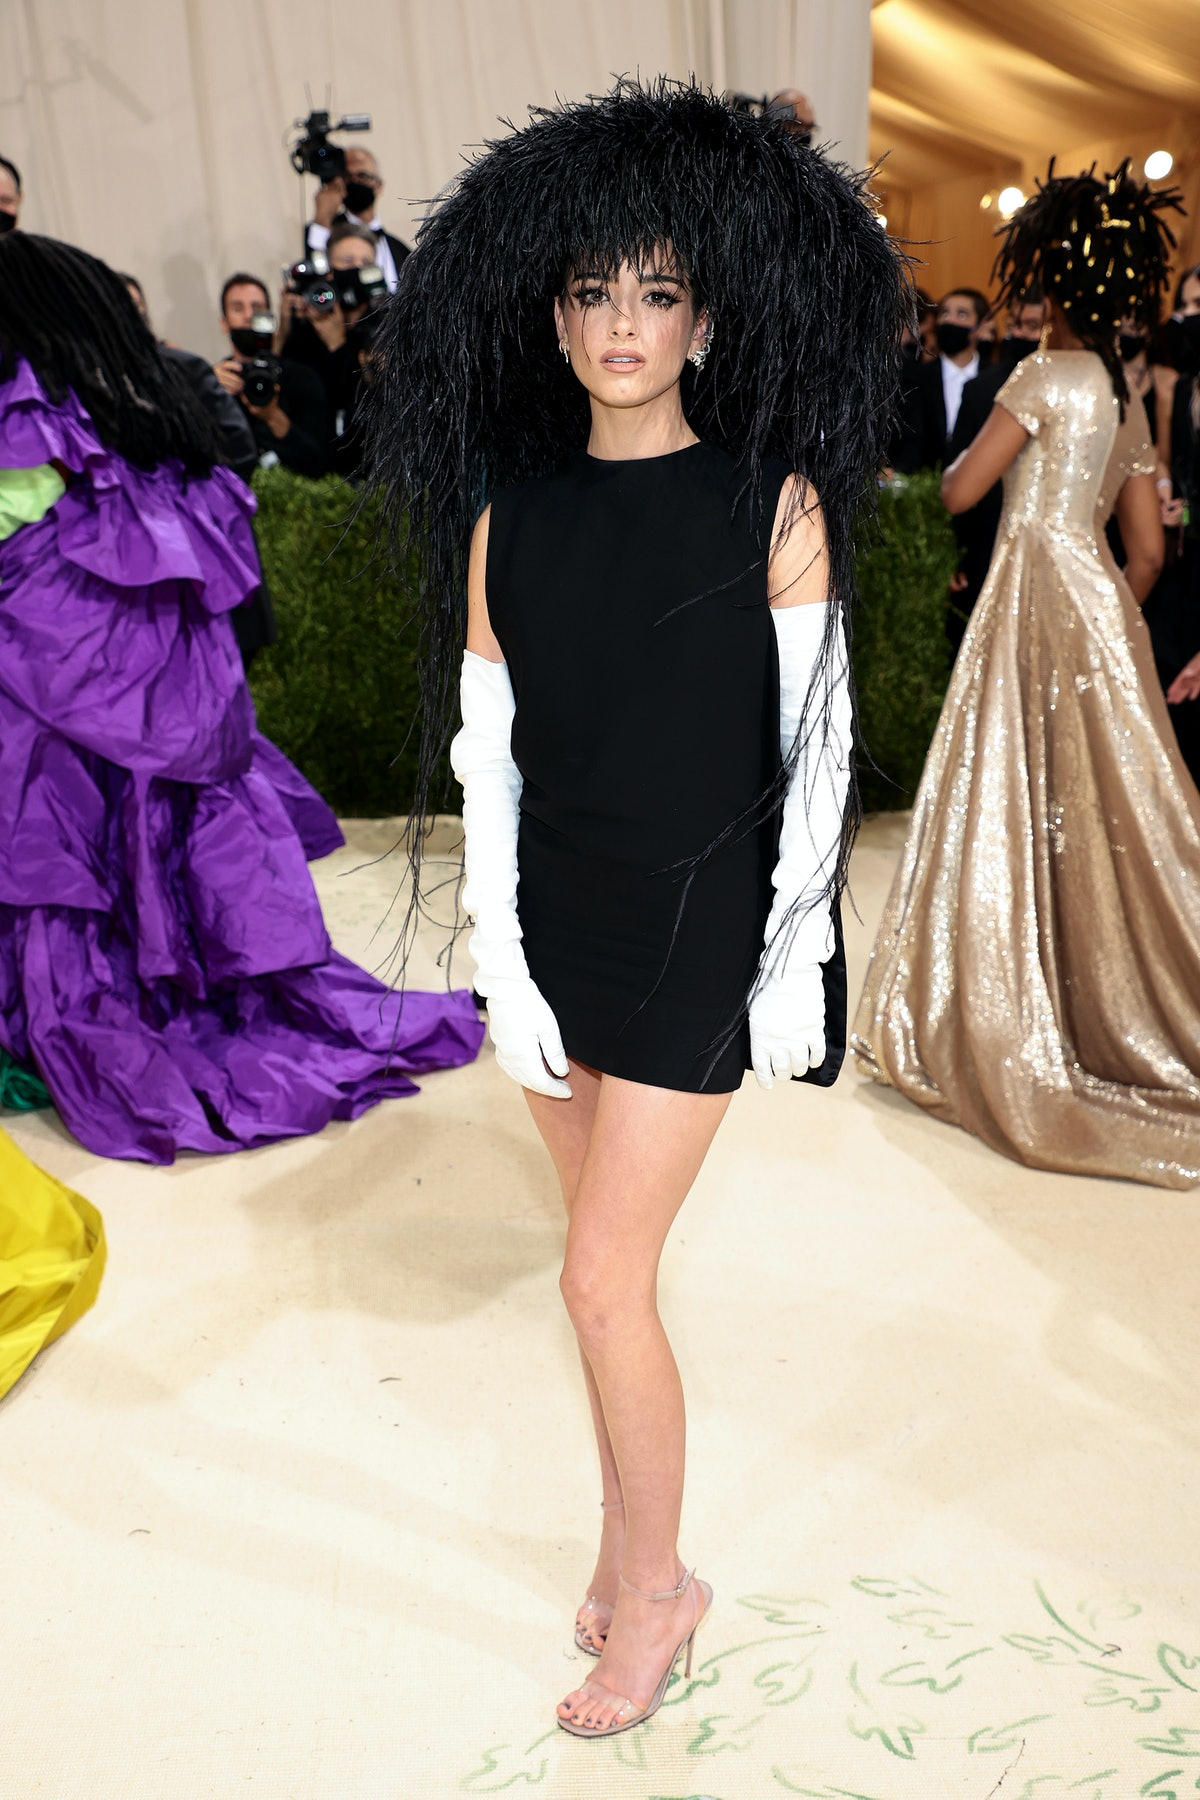 Dixie D'Amelio attends The 2021 Met Gala Celebrating In America: A Lexicon Of Fashion at Metropolita...